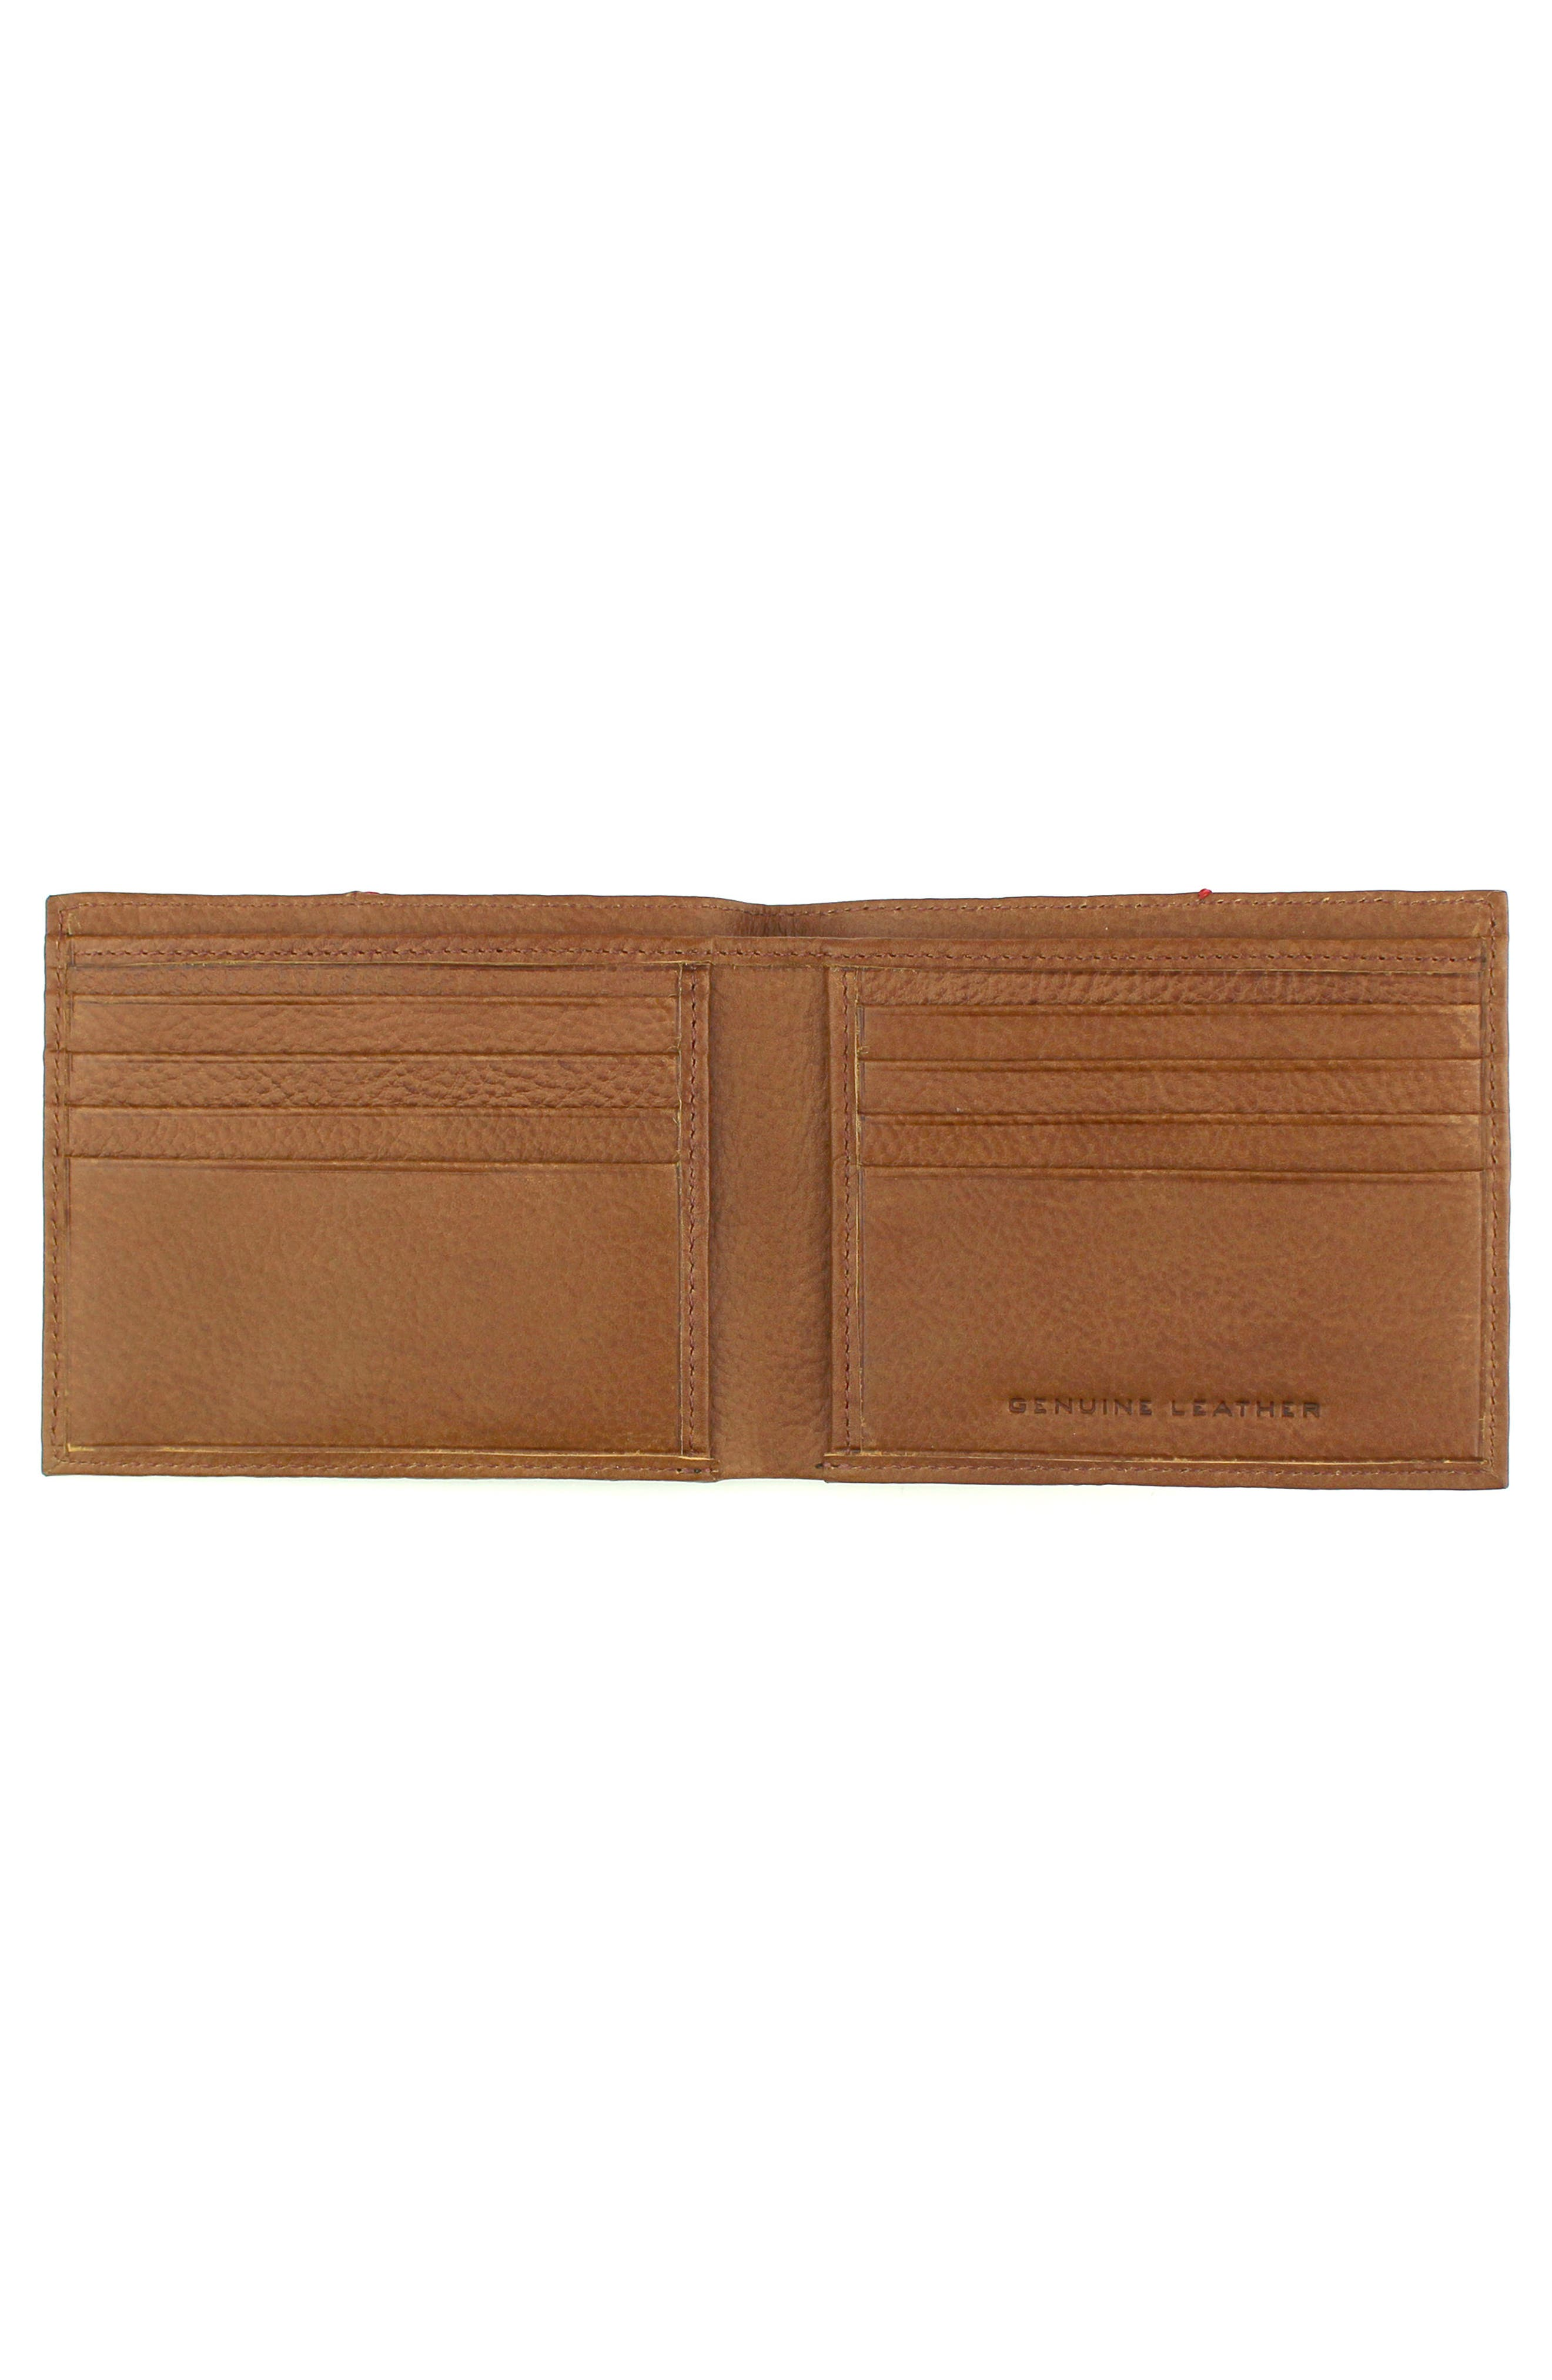 Home Run Bifold Leather Wallet,                             Alternate thumbnail 2, color,                             Cognac